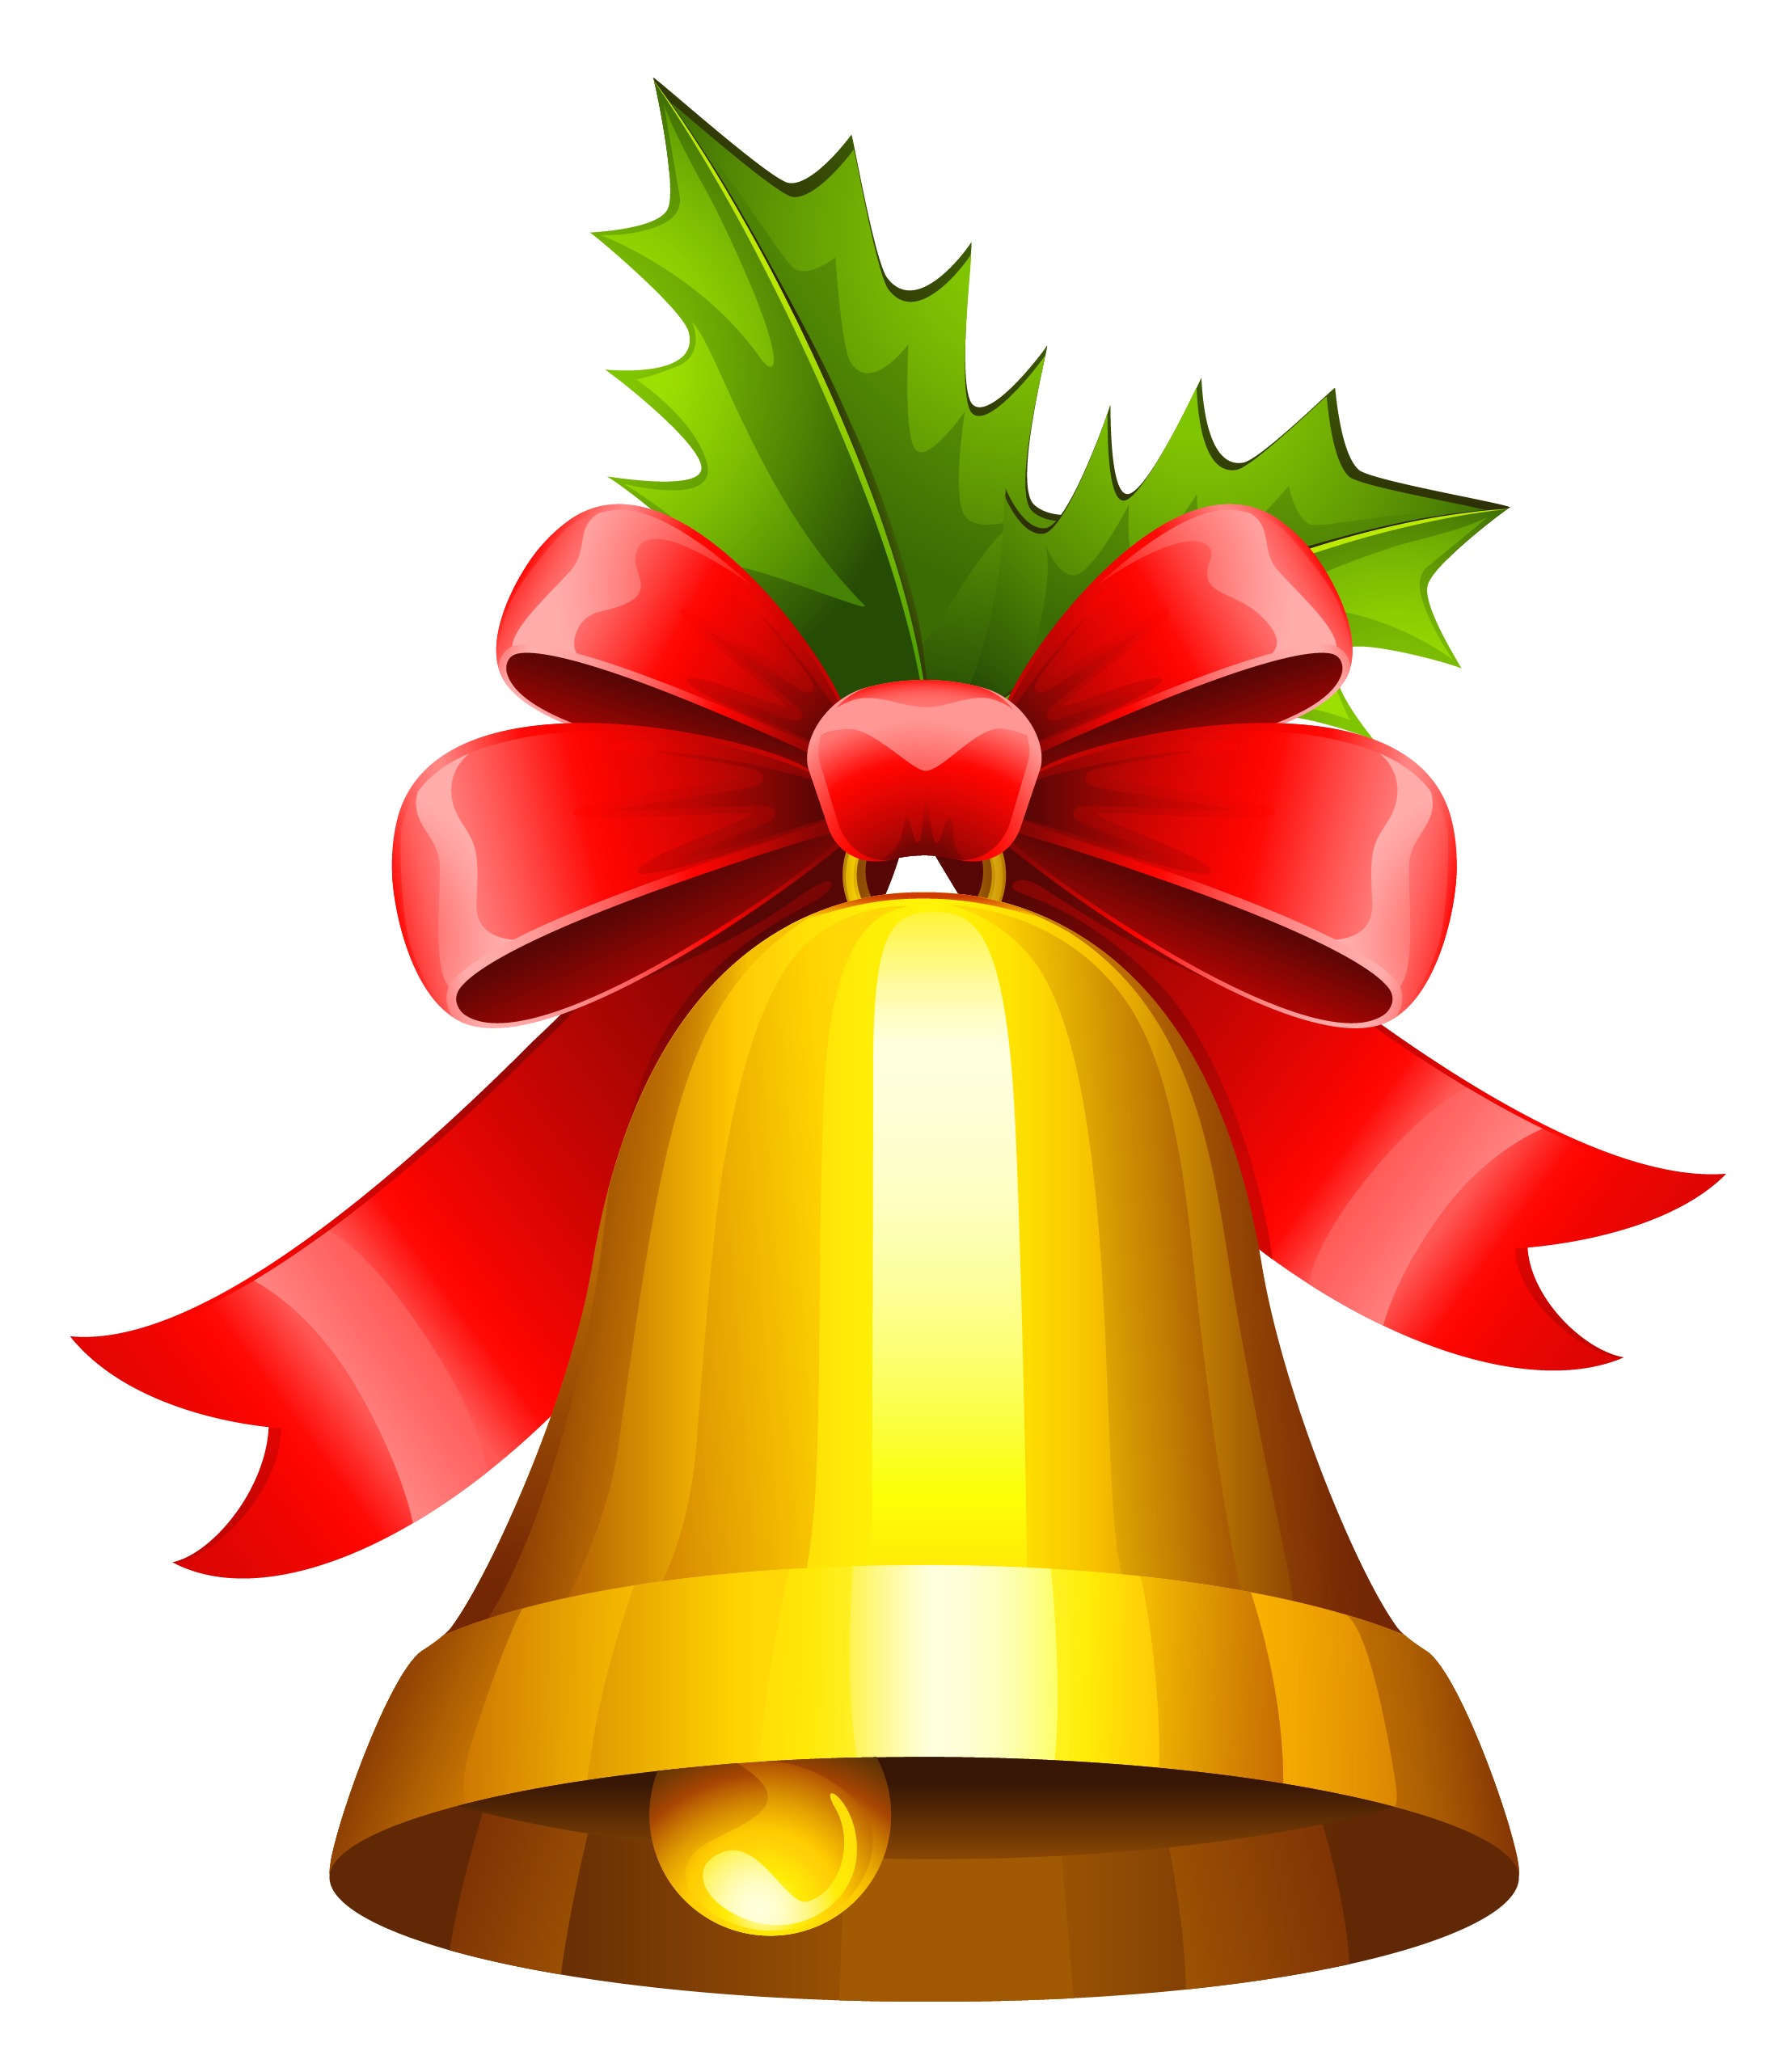 liberty bell clipart png